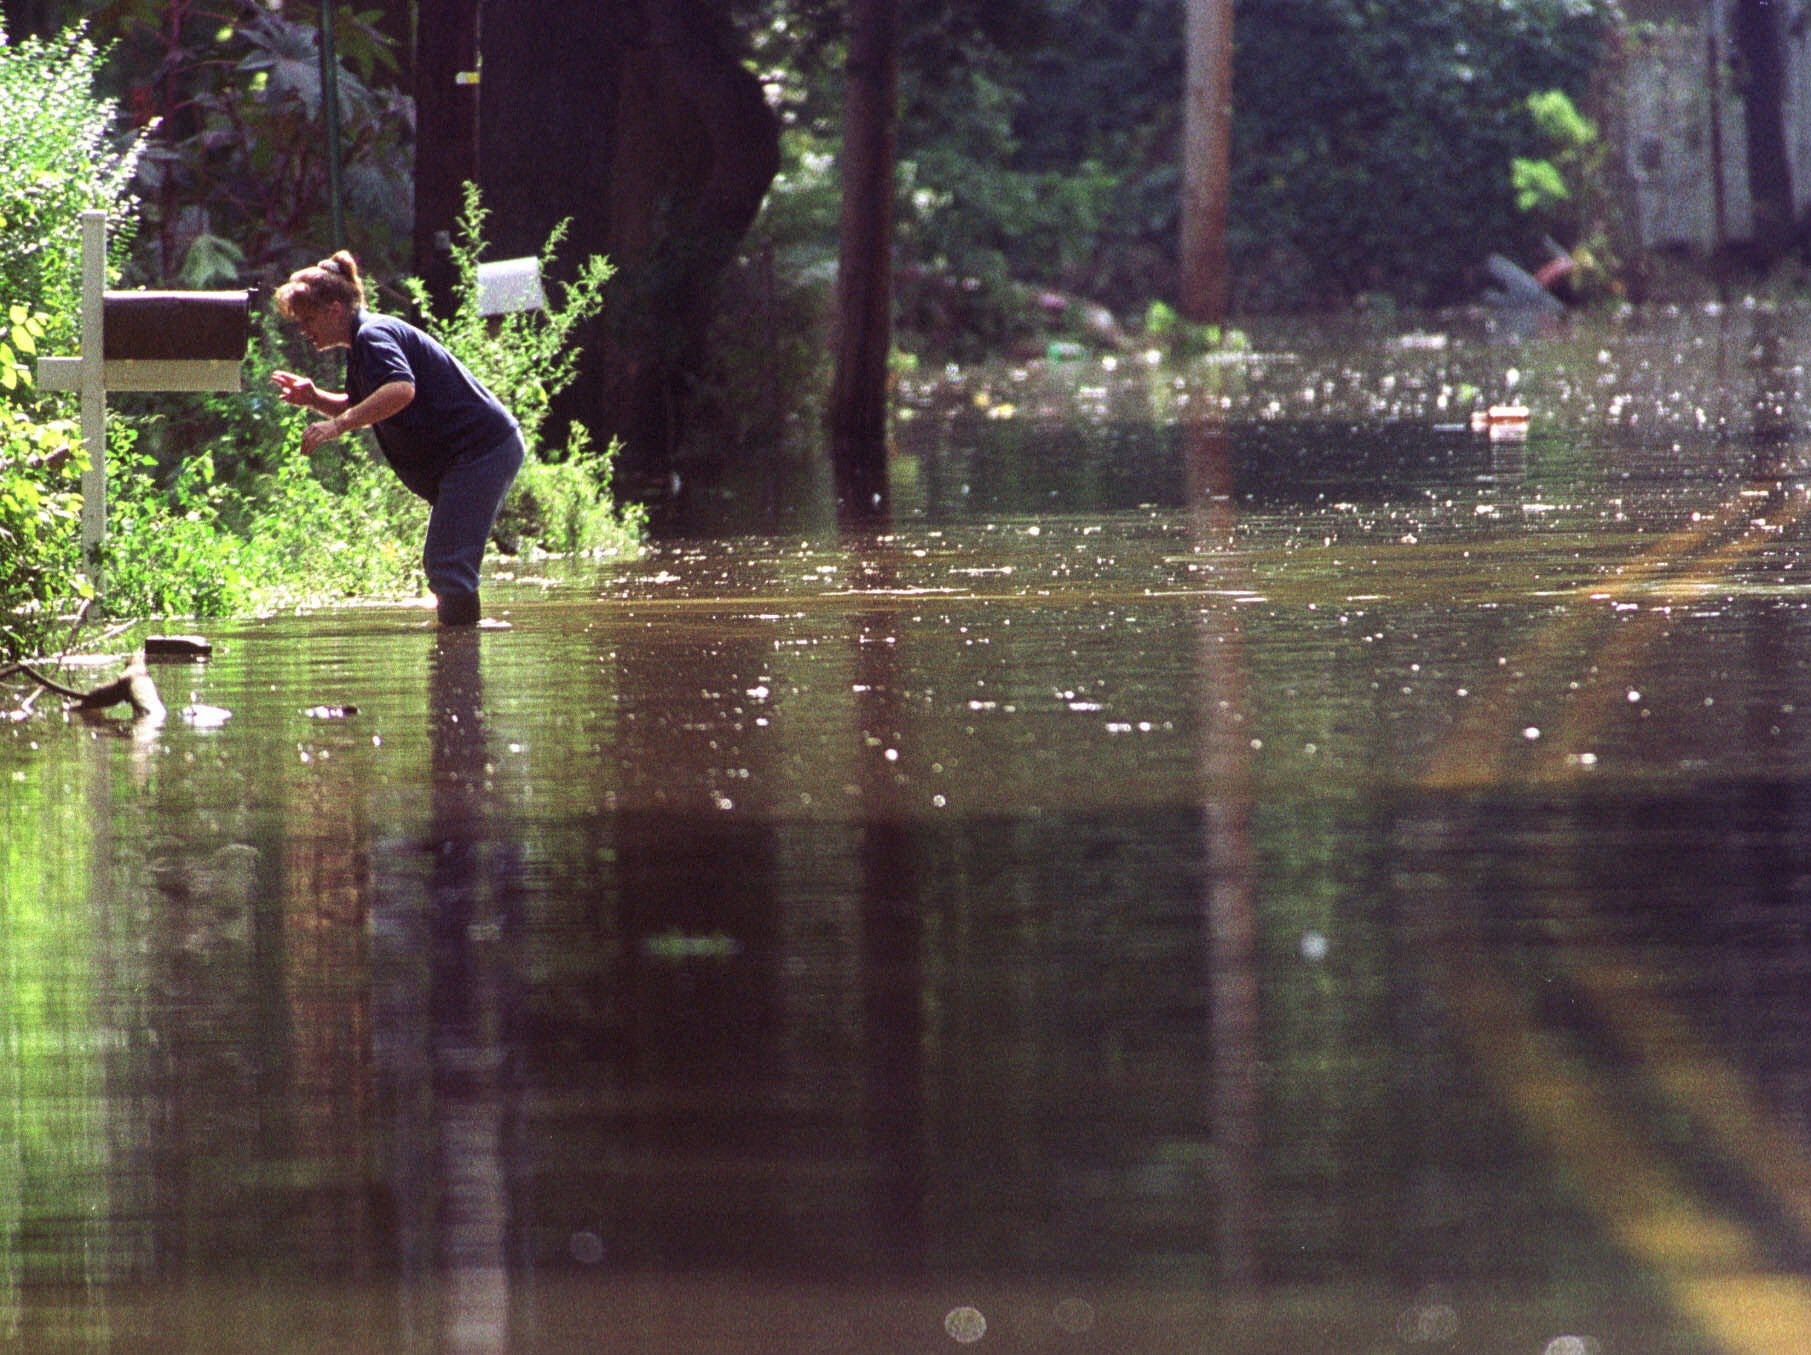 Sept. 19, 1999: A resident checks her mailbox on a still-flooded street in the Mt. View section of Wayne. On the fourth day after Hurricane Floyd drenched the state with record and near record rain falls, some rivers remained above their flood stage.